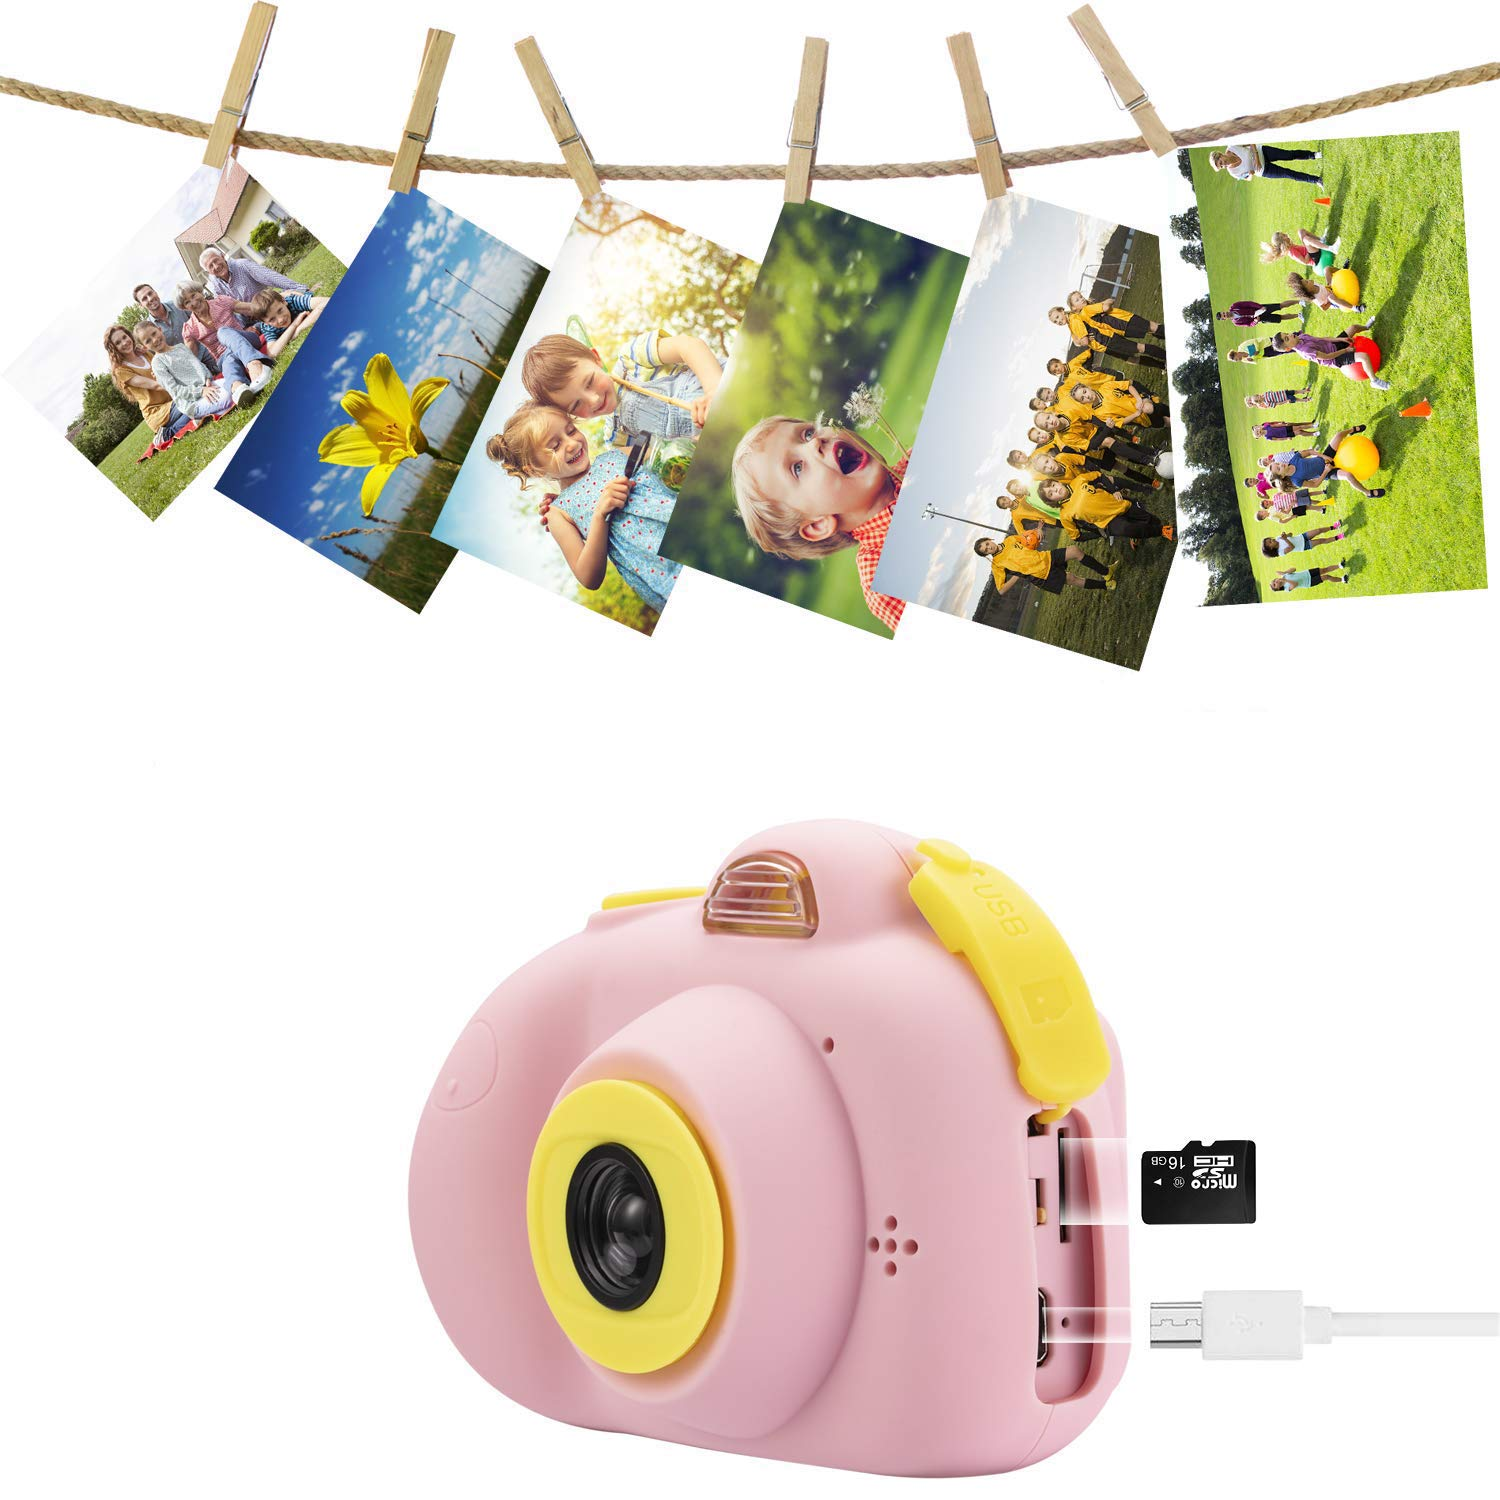 Abdtech Kids Camera Video Cameras Gifts for Girls, Mini Rechargeable Children Shockproof Digital Camcorders Little Girl Toys Gift 8MP with Battery 2 Inch Screen 16GB SD Card ( Pink ) by Abdtech (Image #5)